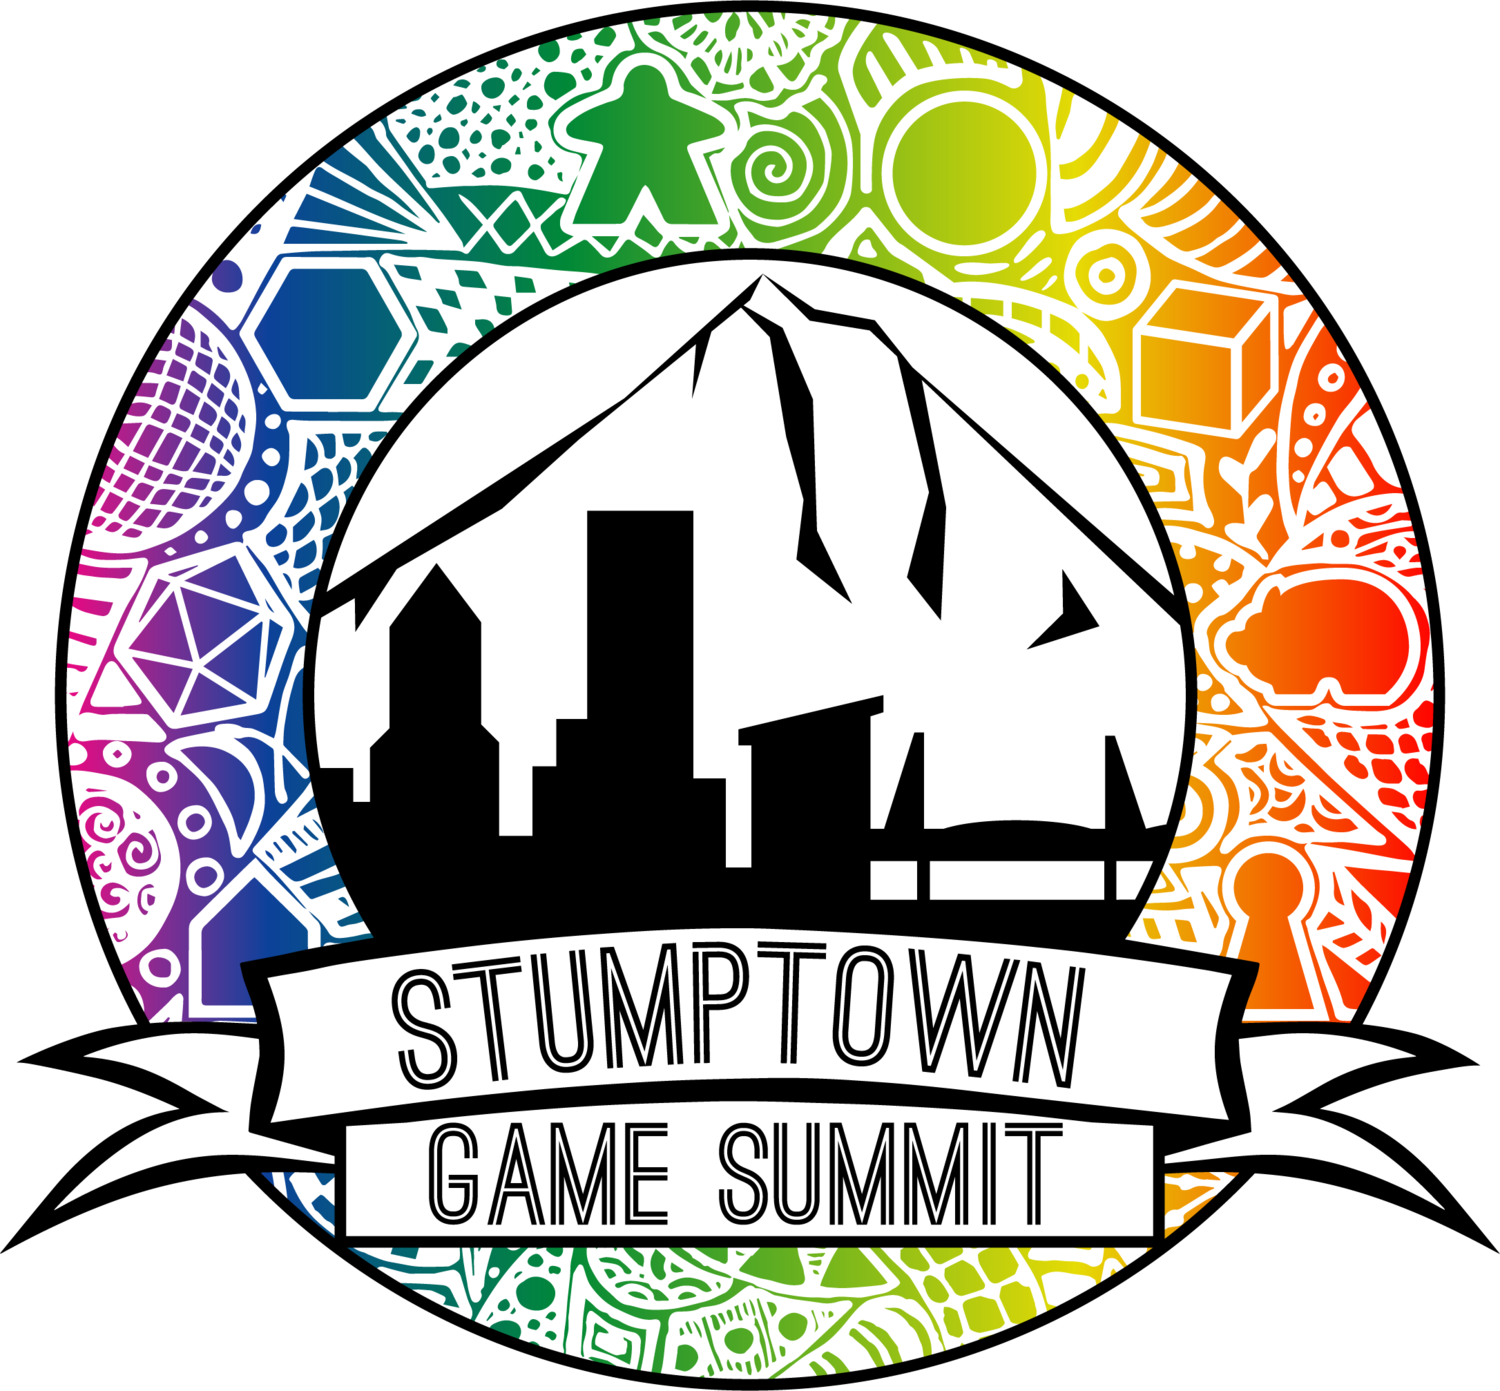 Stumptown Game Summit